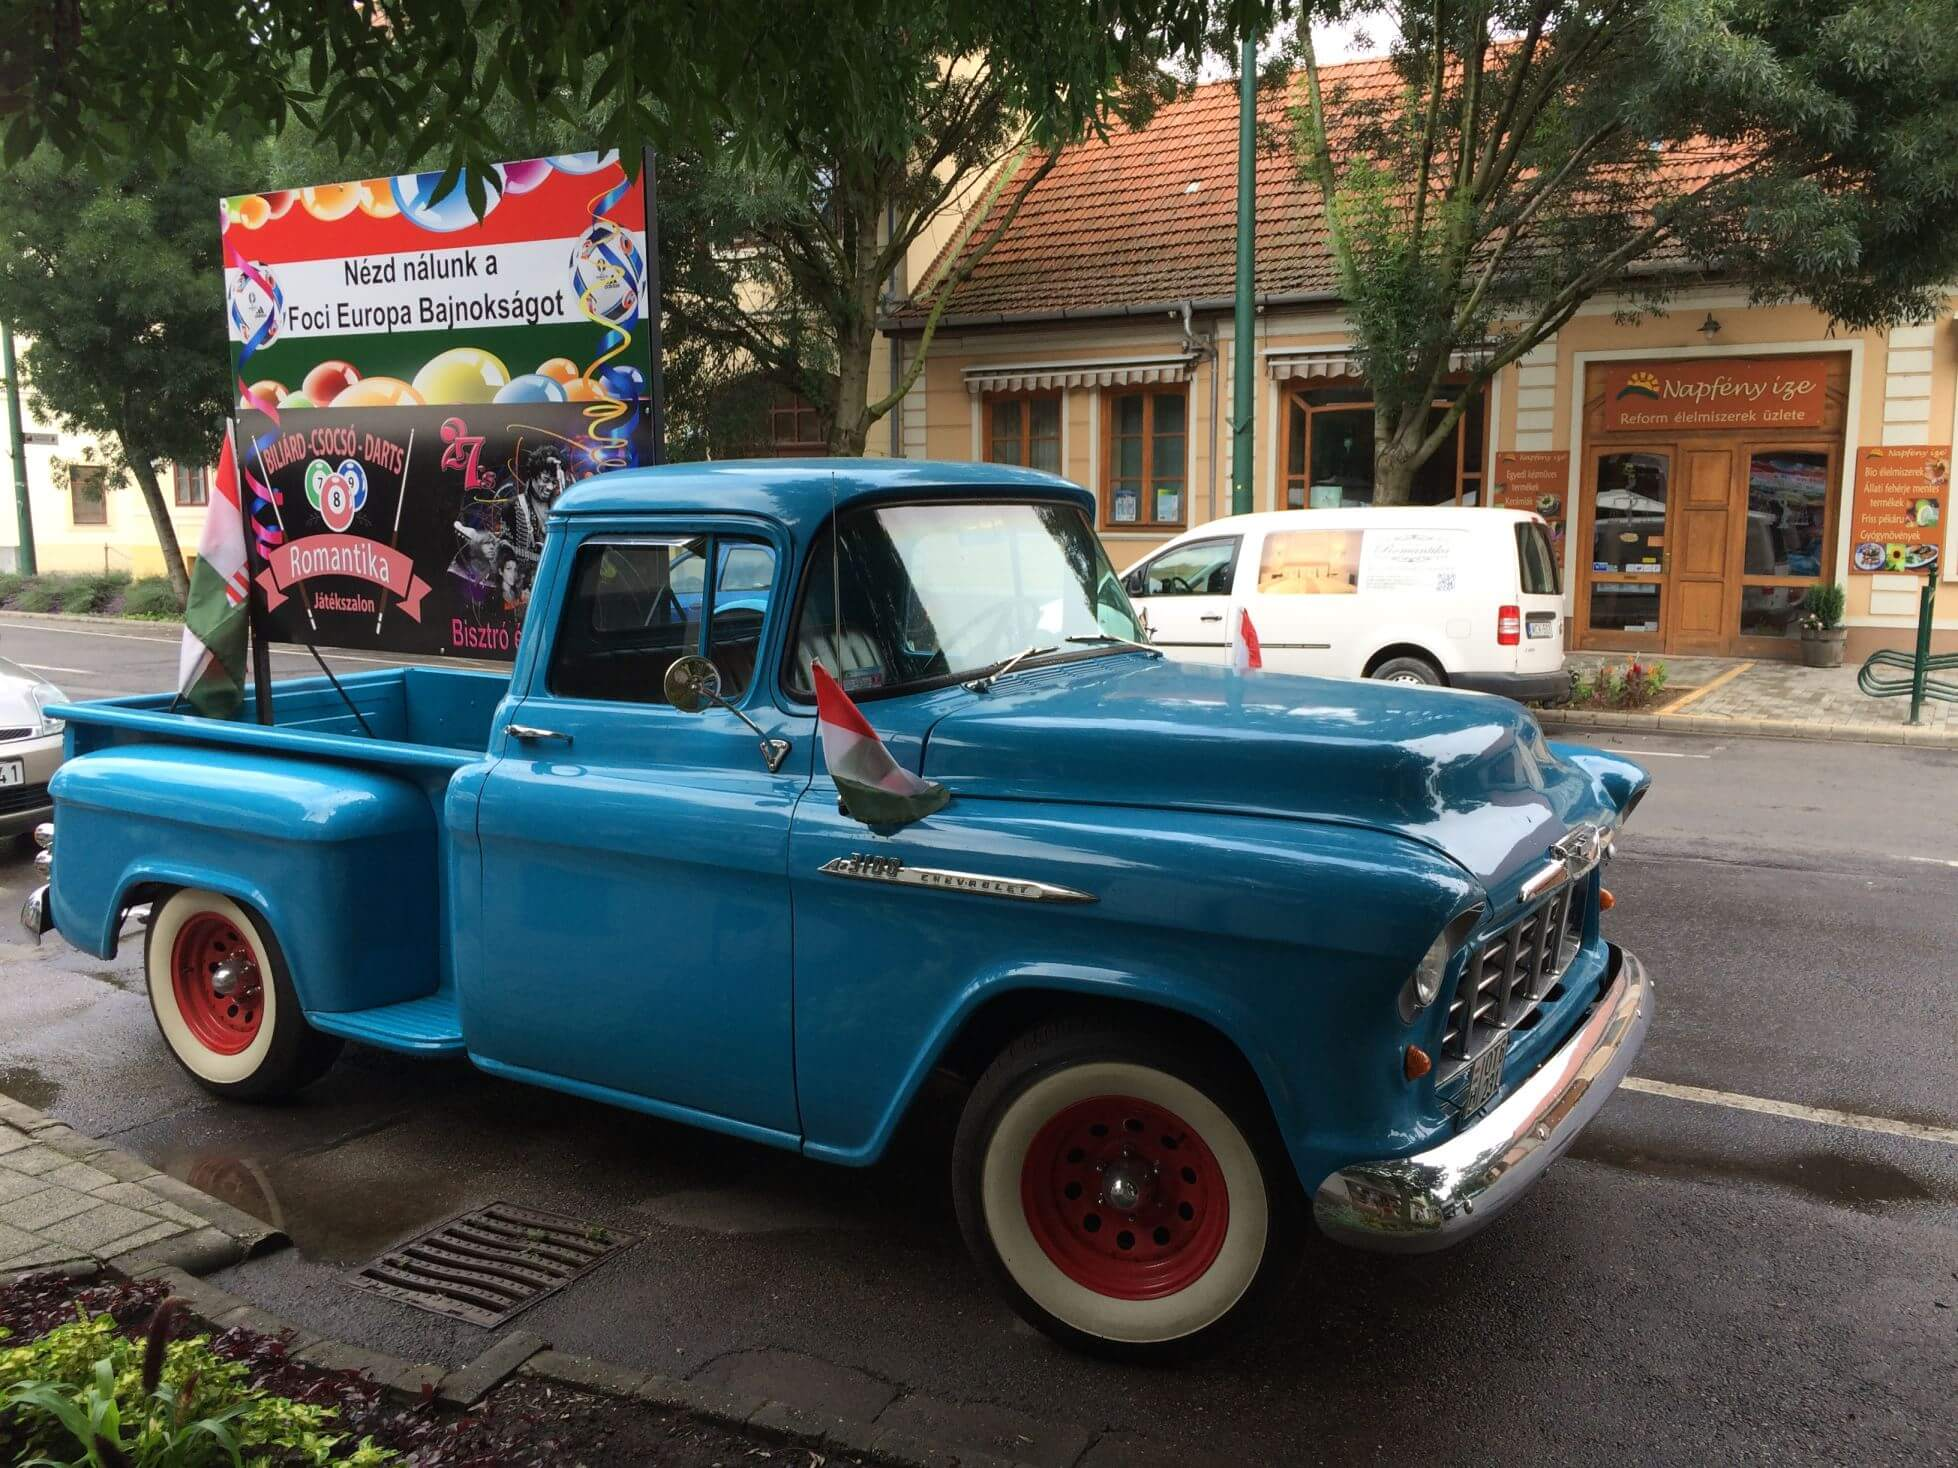 Old Timer Truck in Gyula, Hungary